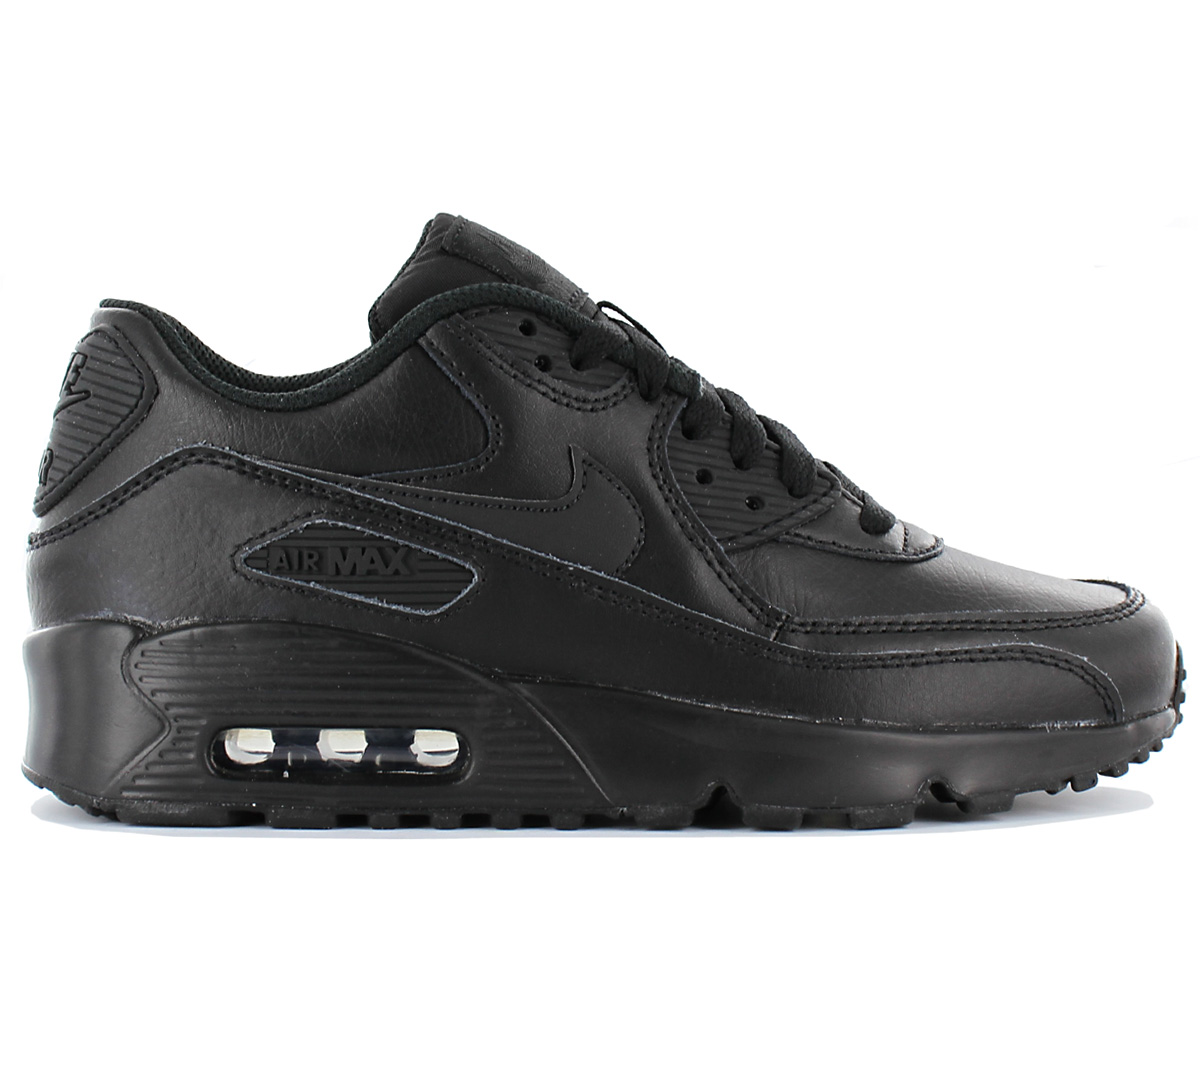 wholesale dealer 6b3ba 806a4 Nike Air Max 90 Leather Ladies Sneaker Shoes Leather Black 833412 ...